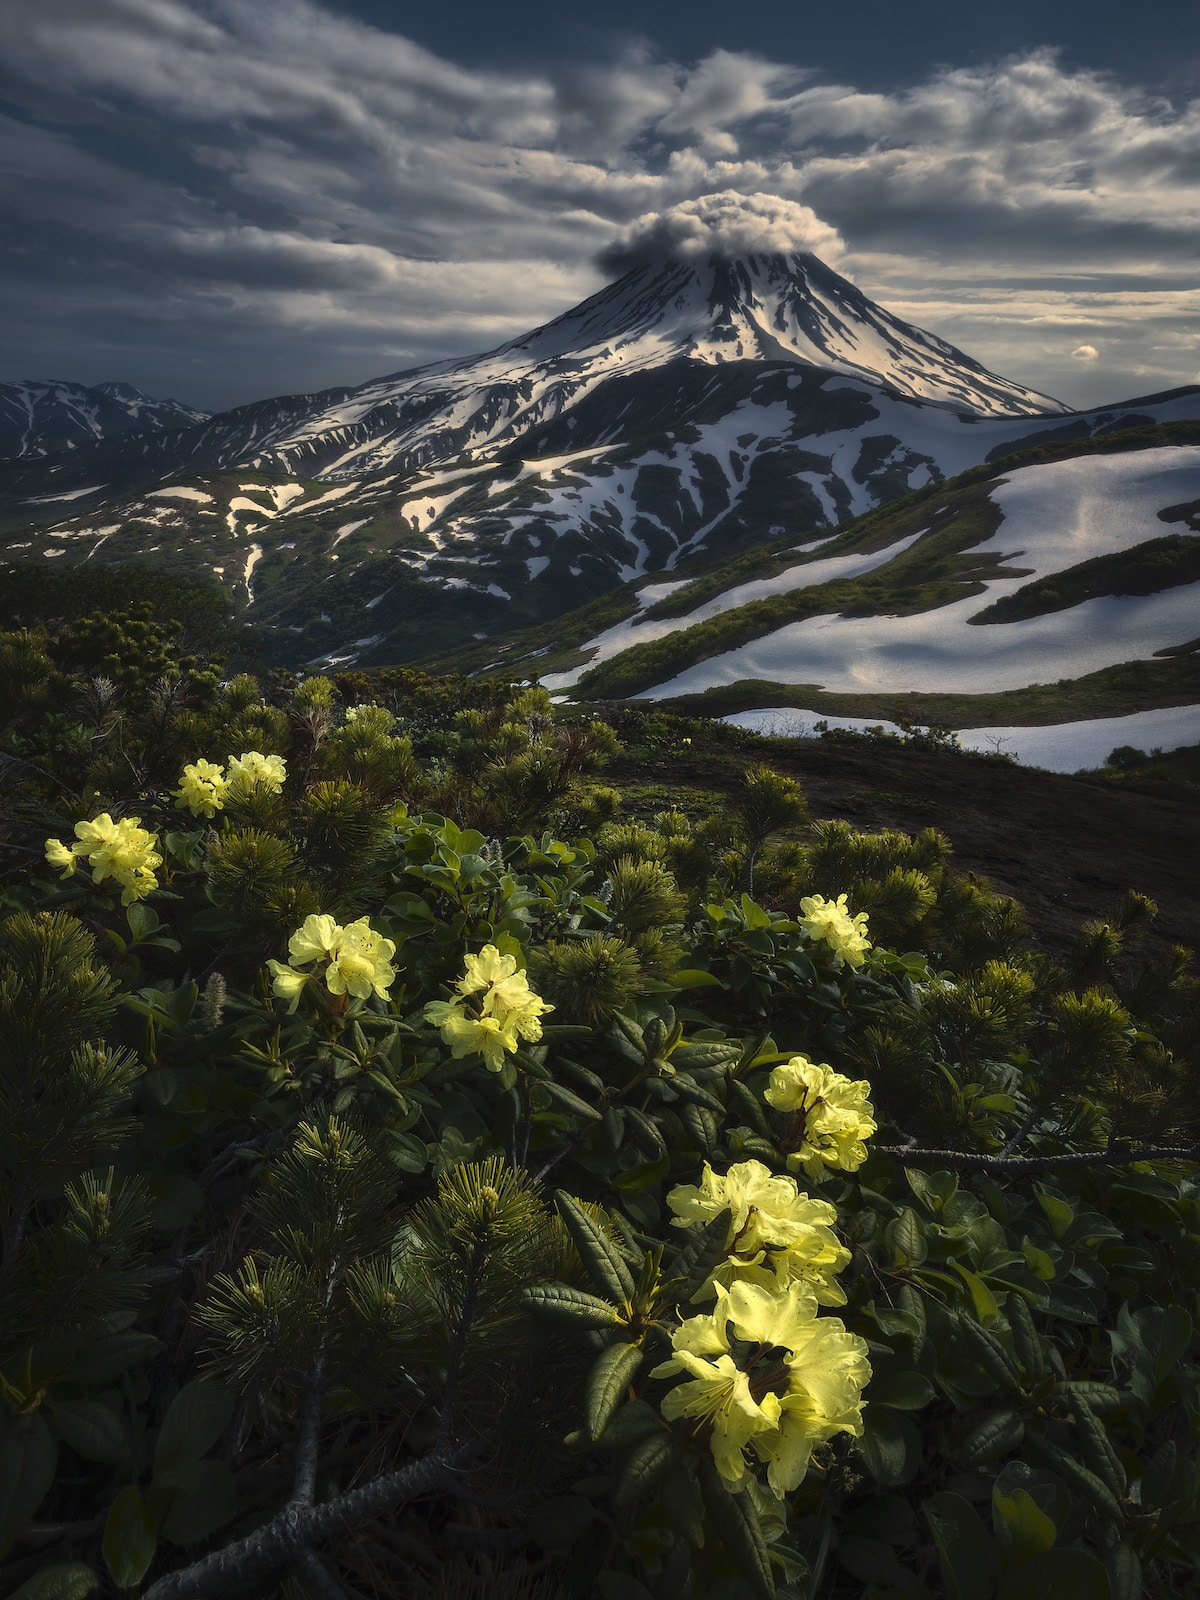 Vilyuchik stratovolcano with yellow rhododendrons in the foreground